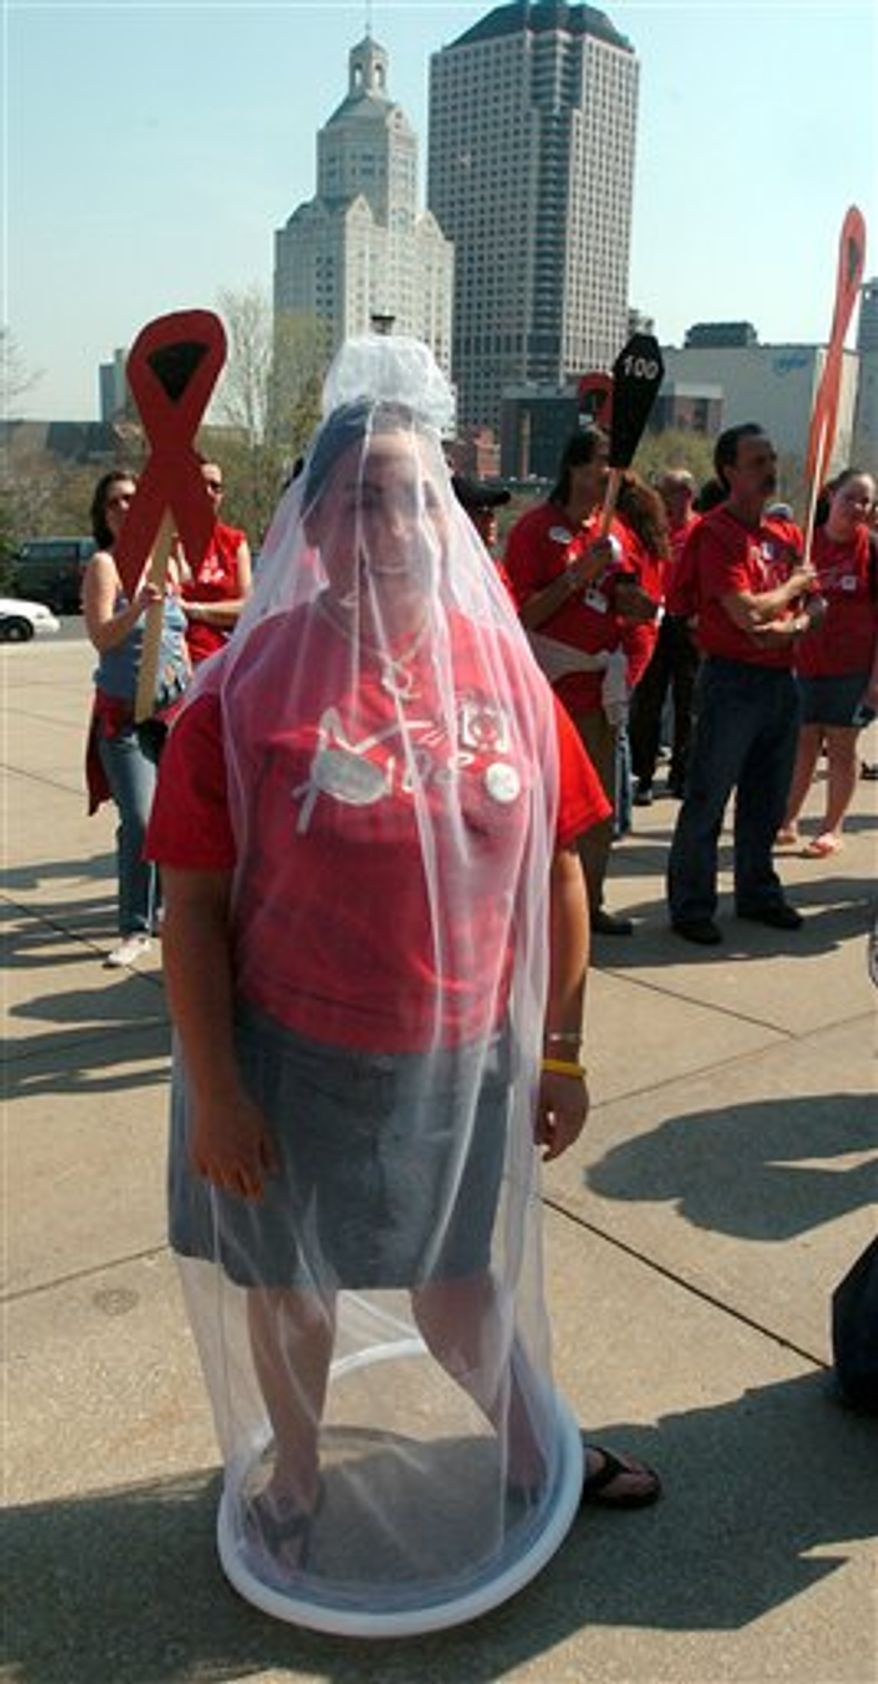 FILE - In this April 20, 2005 file photo, student Marissa Manzi wears a condom costume at an AIDS Awareness Day rally outside the state Capitol in Hartford, Conn. The male-female orgasm gap. The sex lives of 14-year-olds. An intriguing breakdown of condom usage rates, by age and ethnicity, with teens emerging as more safe-sex-conscious than boomers. That's just a tiny sampling of the data being unveiled Monday, Oct. 4, 2010 in what the researchers say is the largest, most comprehensive national survey of Americans' sexual behavior since 1994. (AP Photo/Bob Child, File)